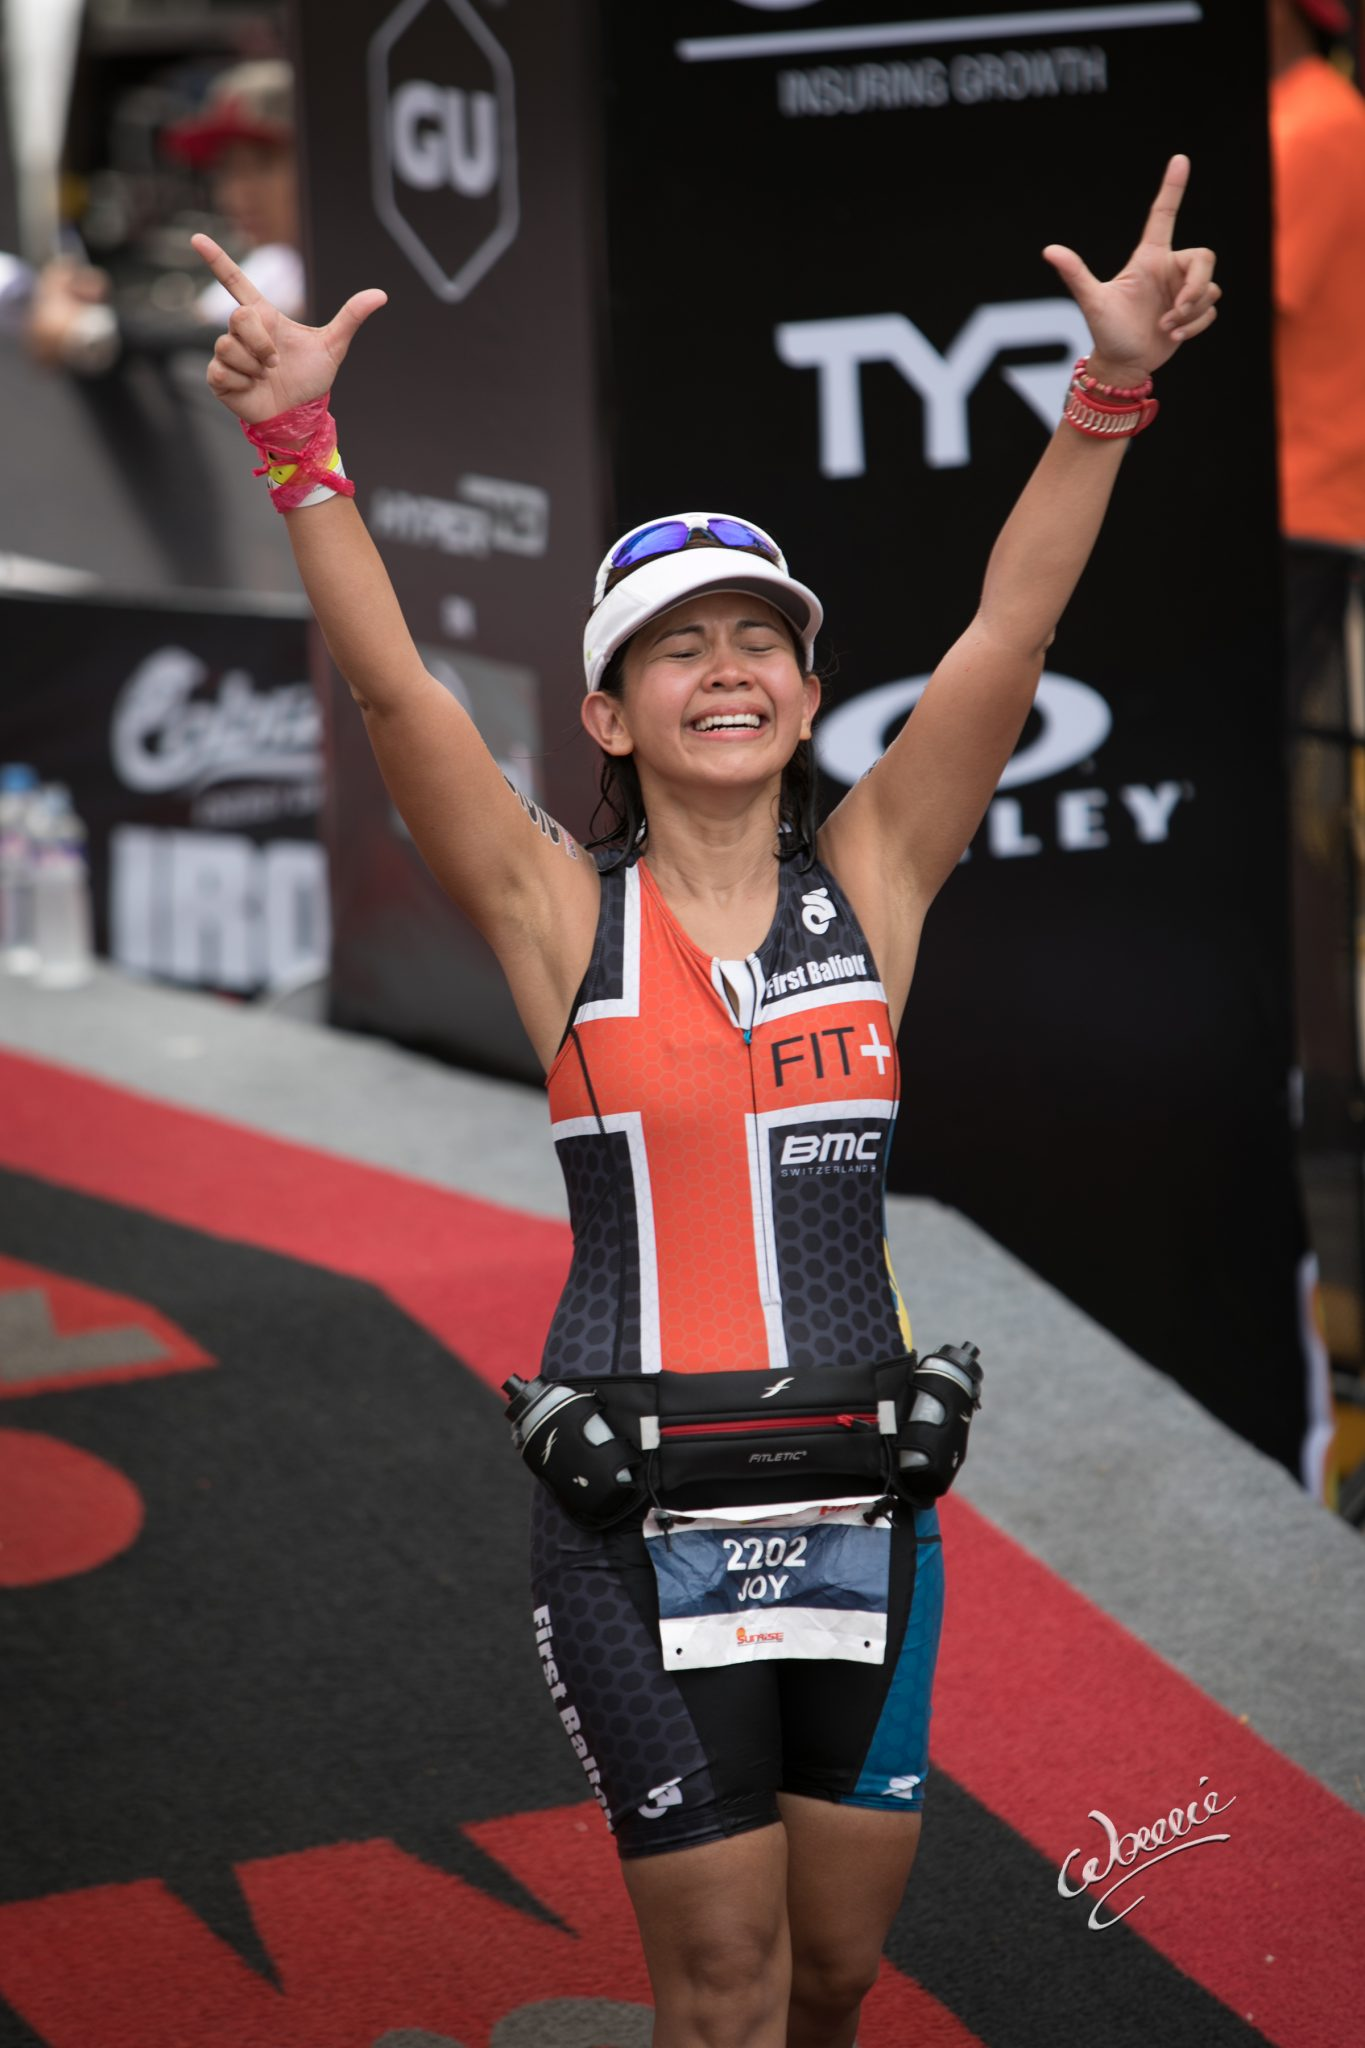 From Cancer Survivor to Ironman 70.3 Finisher | Multisport Philippines